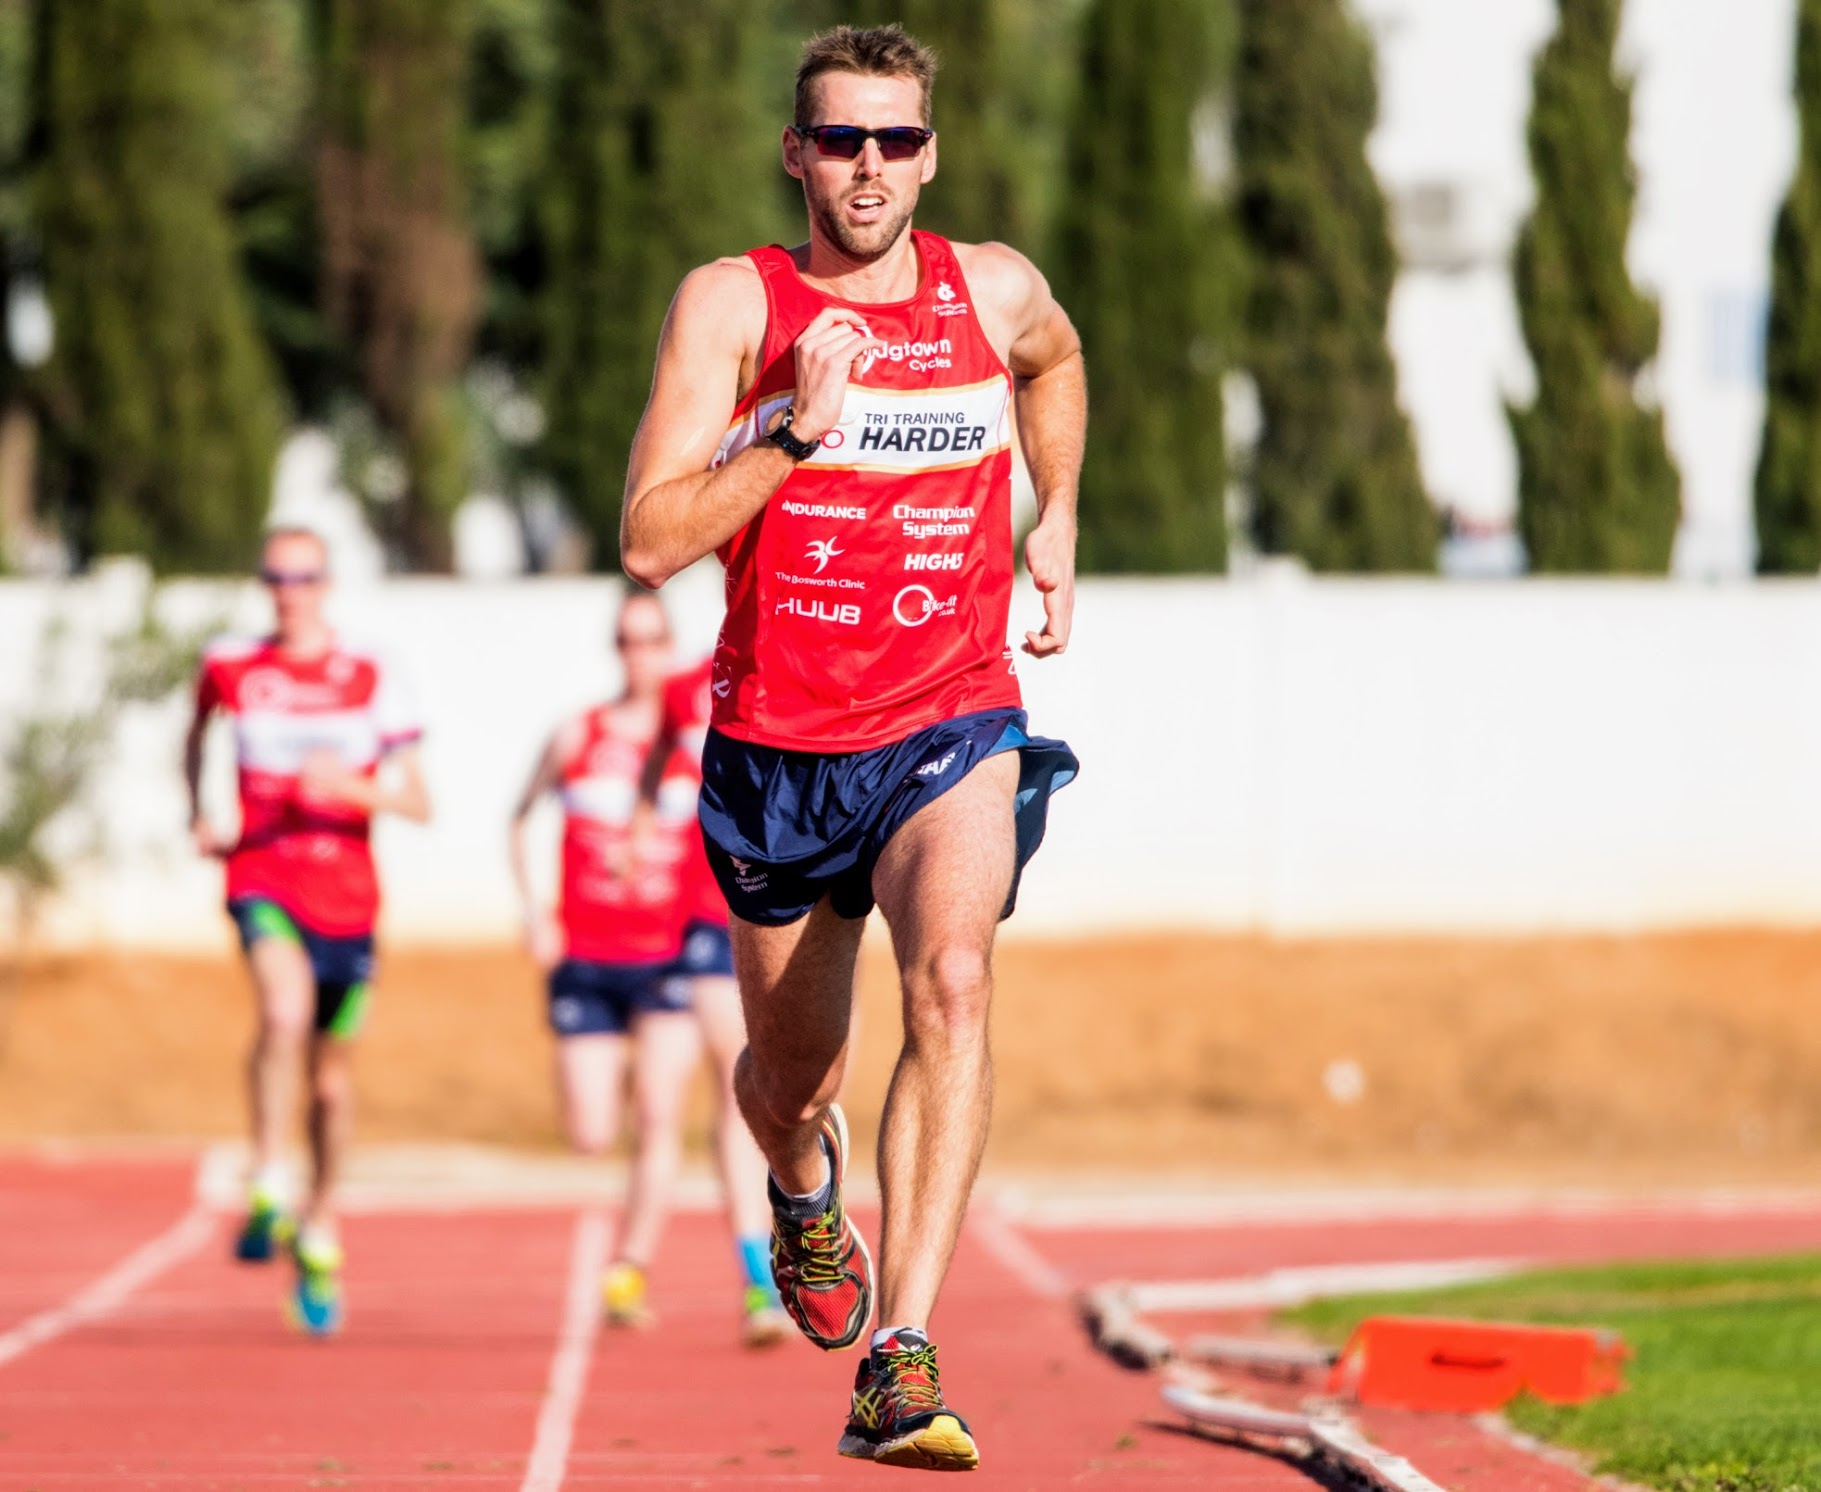 Running can be a contributing factor to ITBS, especially on a track if only gong one way!